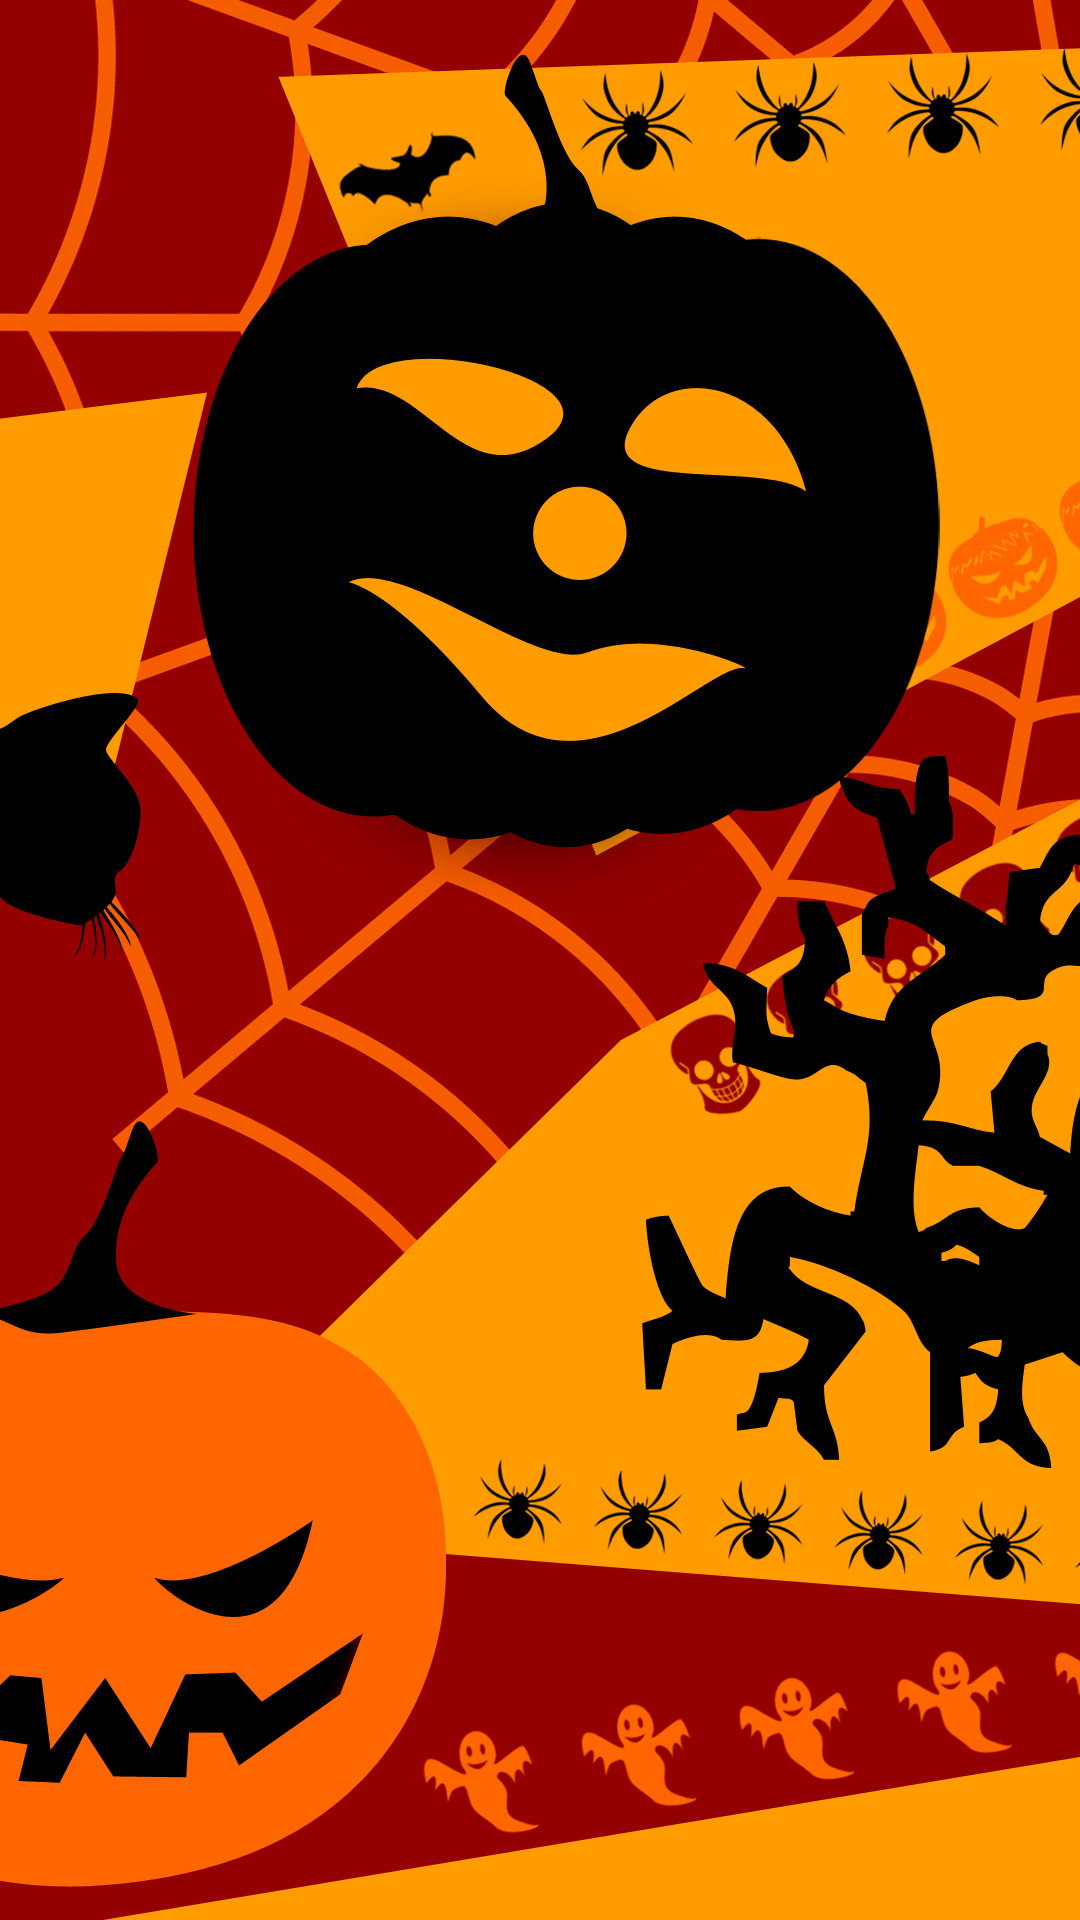 Marvel Hd Wallpapers For Mobile Halloween Wallpapers Iphone Y Android Fondos De Pantalla